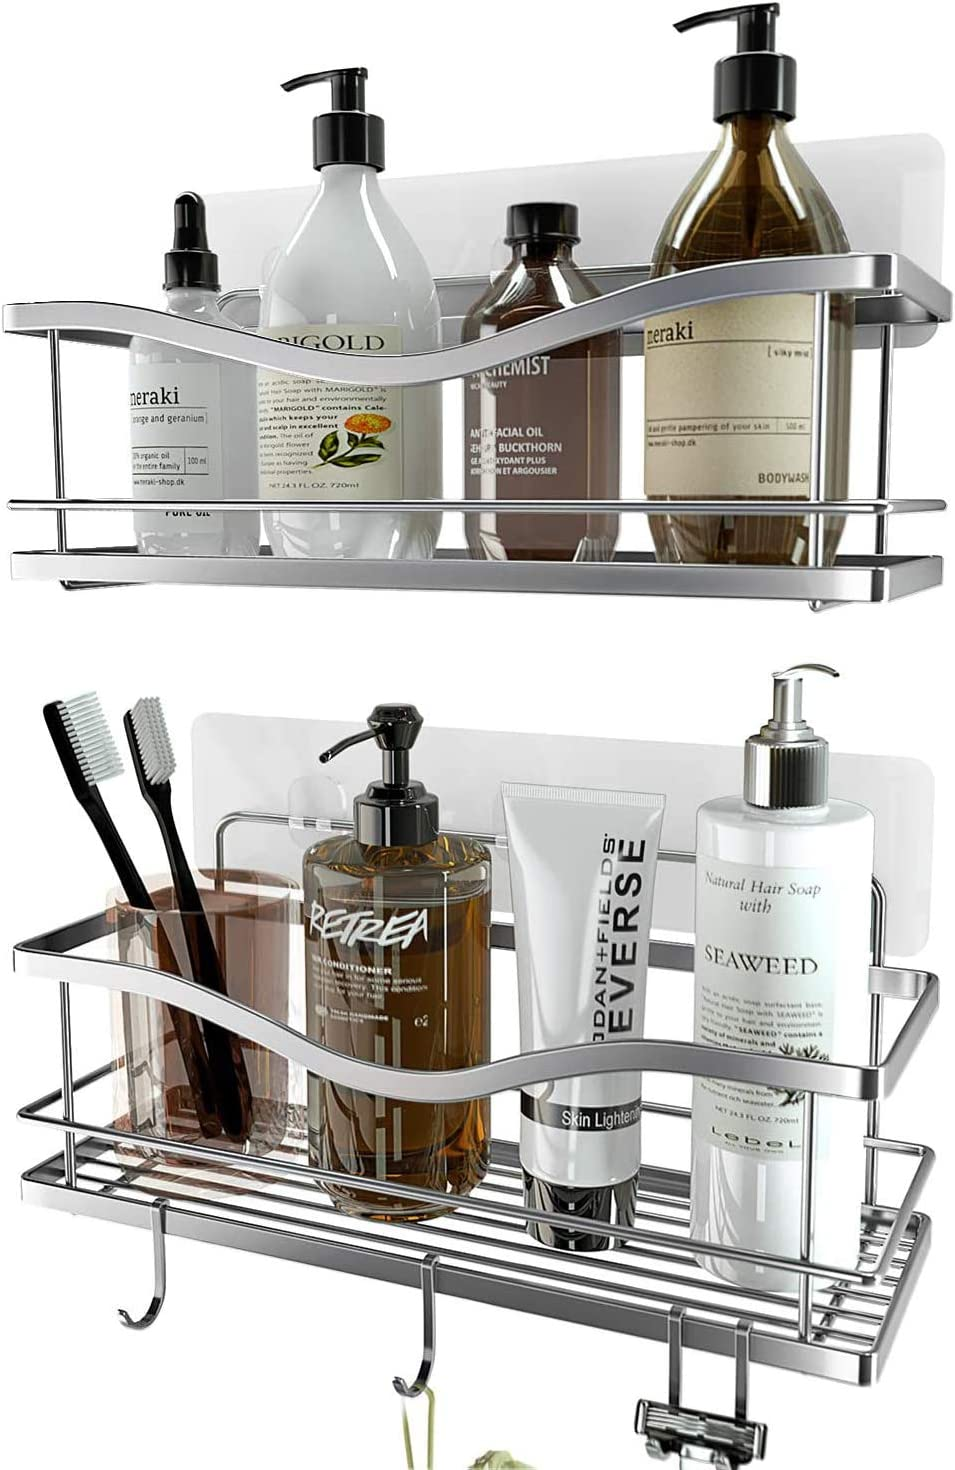 KINCMAX Shower Caddy Bathroom Shelf, No Drilling Traceless Adhesive Bathroom Storage Organizer, SUS304 Rustproof Food Storage Basket, 2-in-1 Kitchen Spice Racks-2 Pack (Polished Silver)